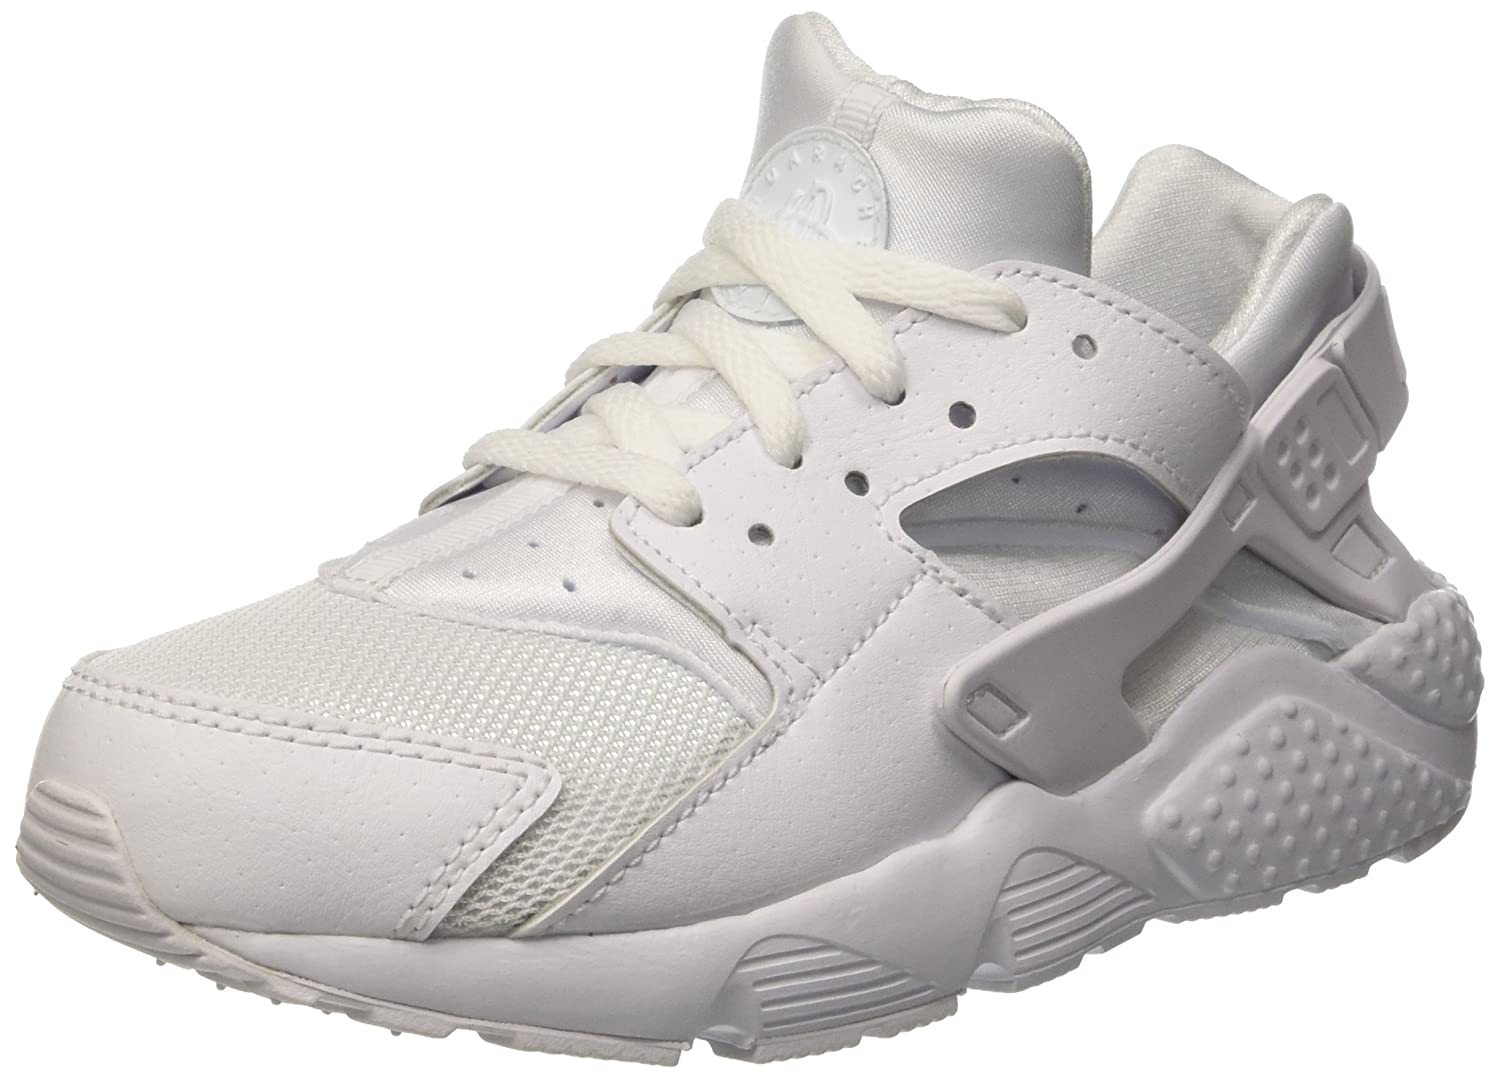 Nike Huarache Little Kids Running Shoes